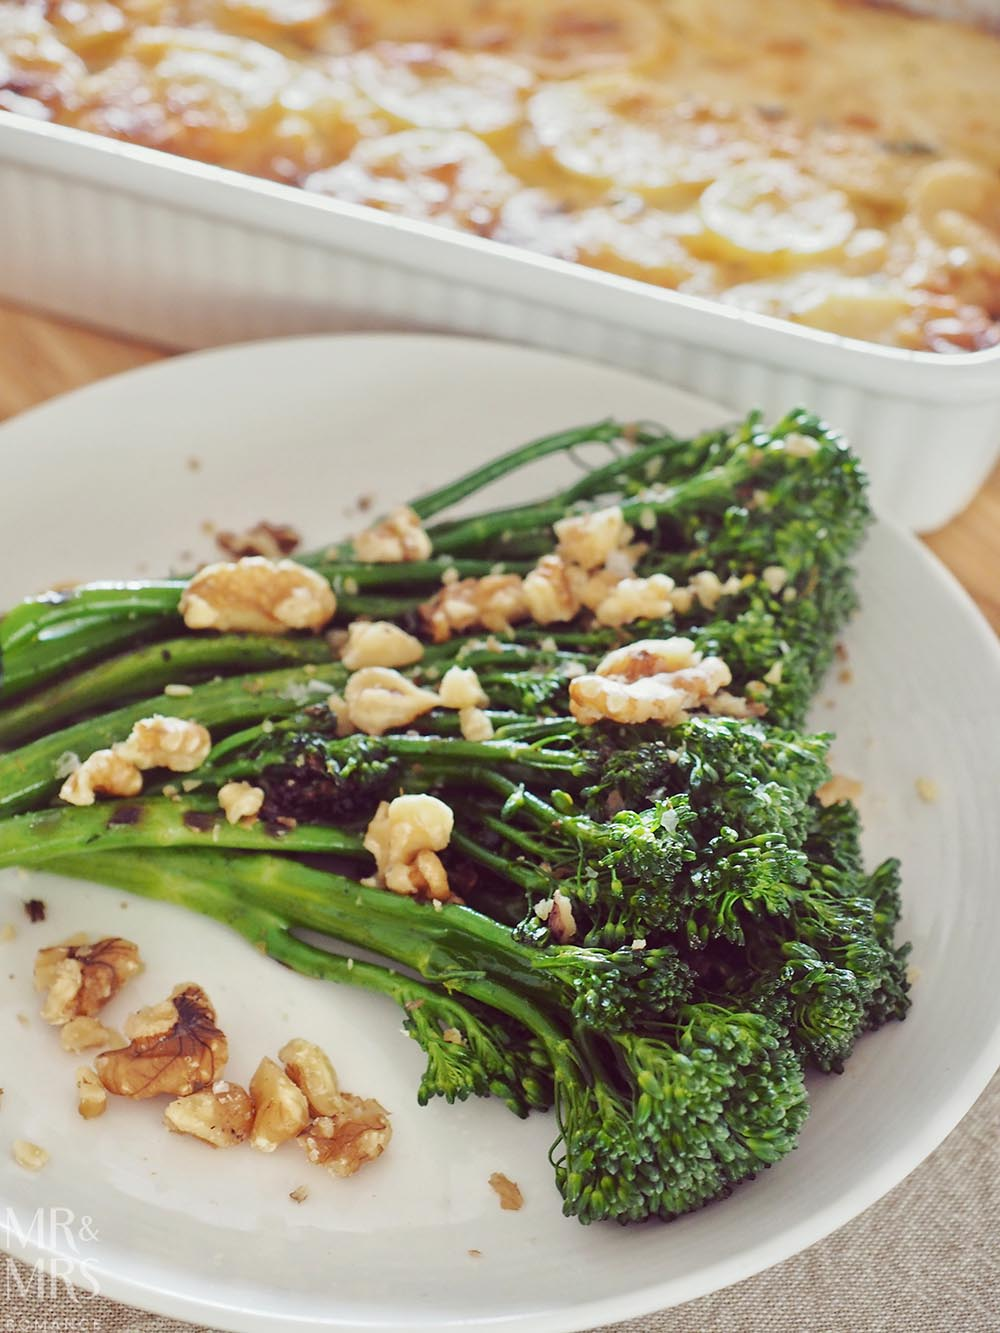 Broccolini with crushed walnuts